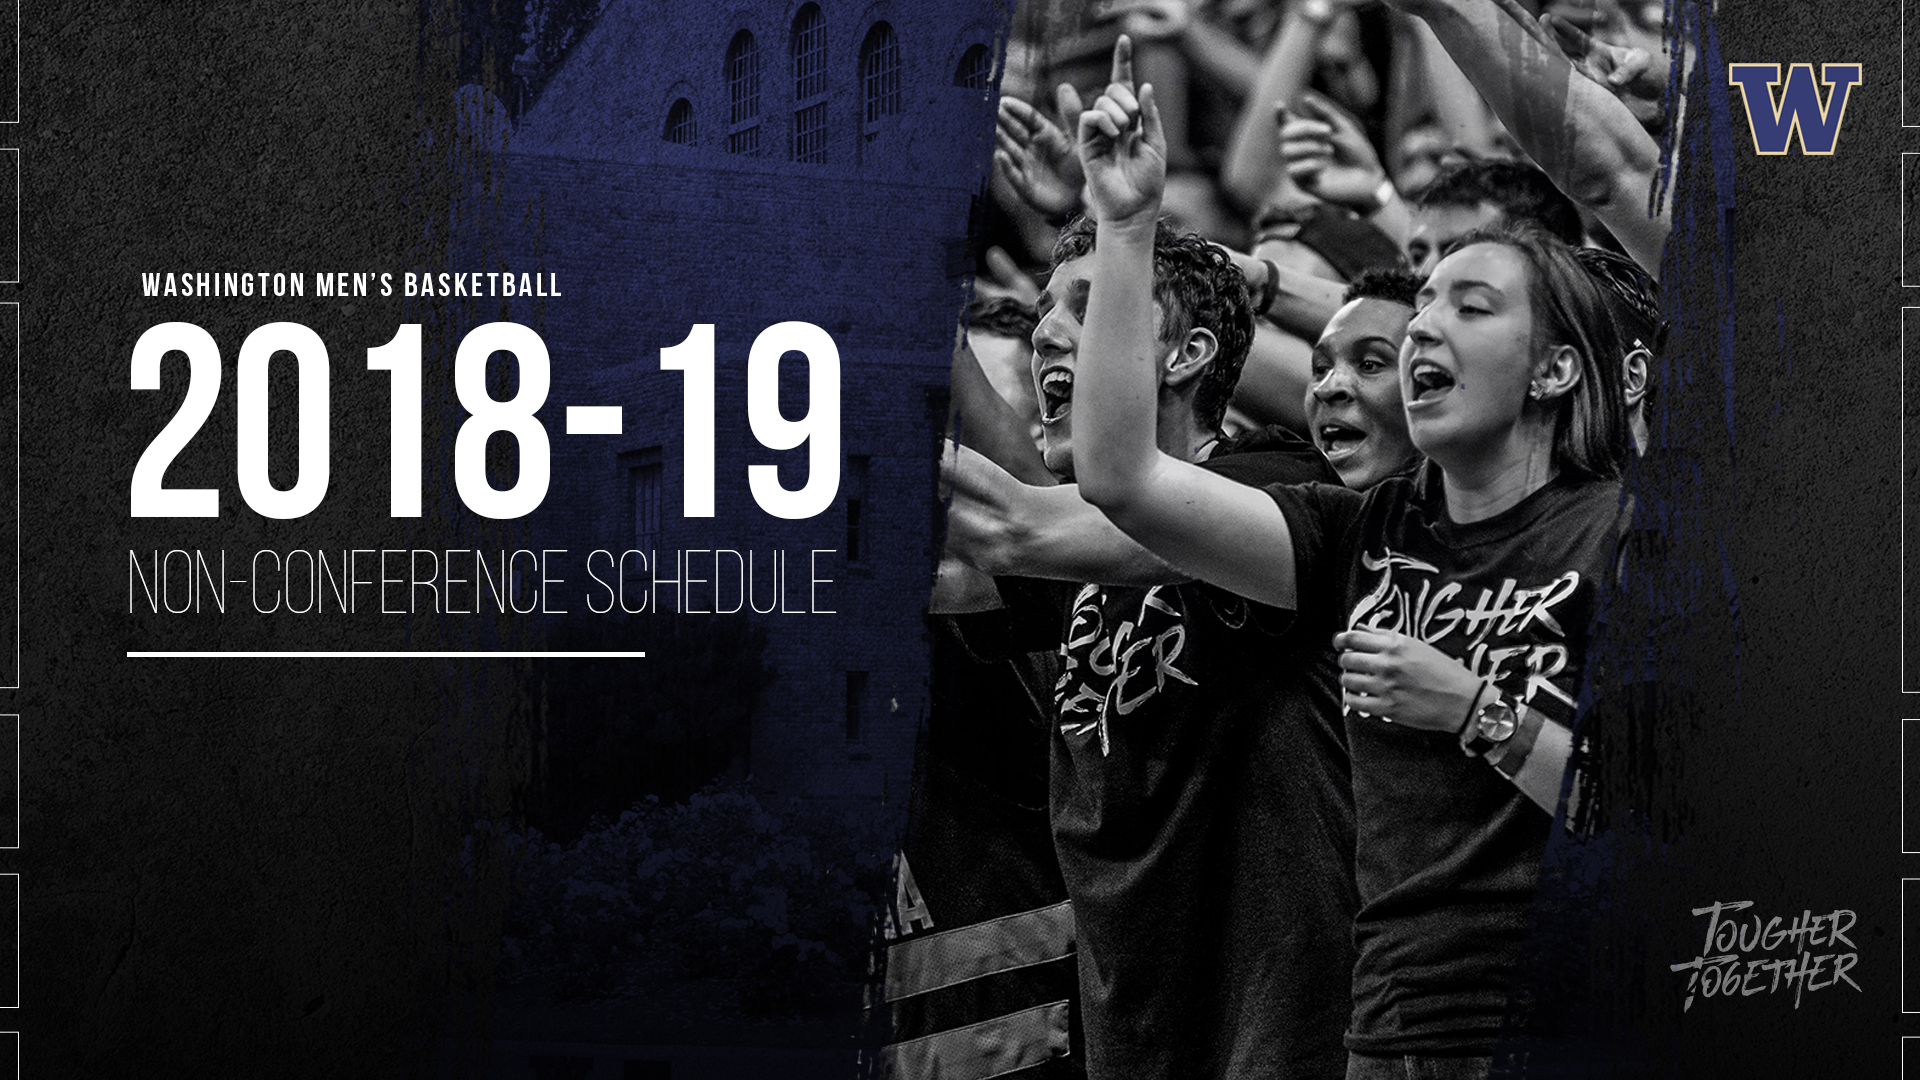 huskies announce 2018-19 non-conference schedule - university of